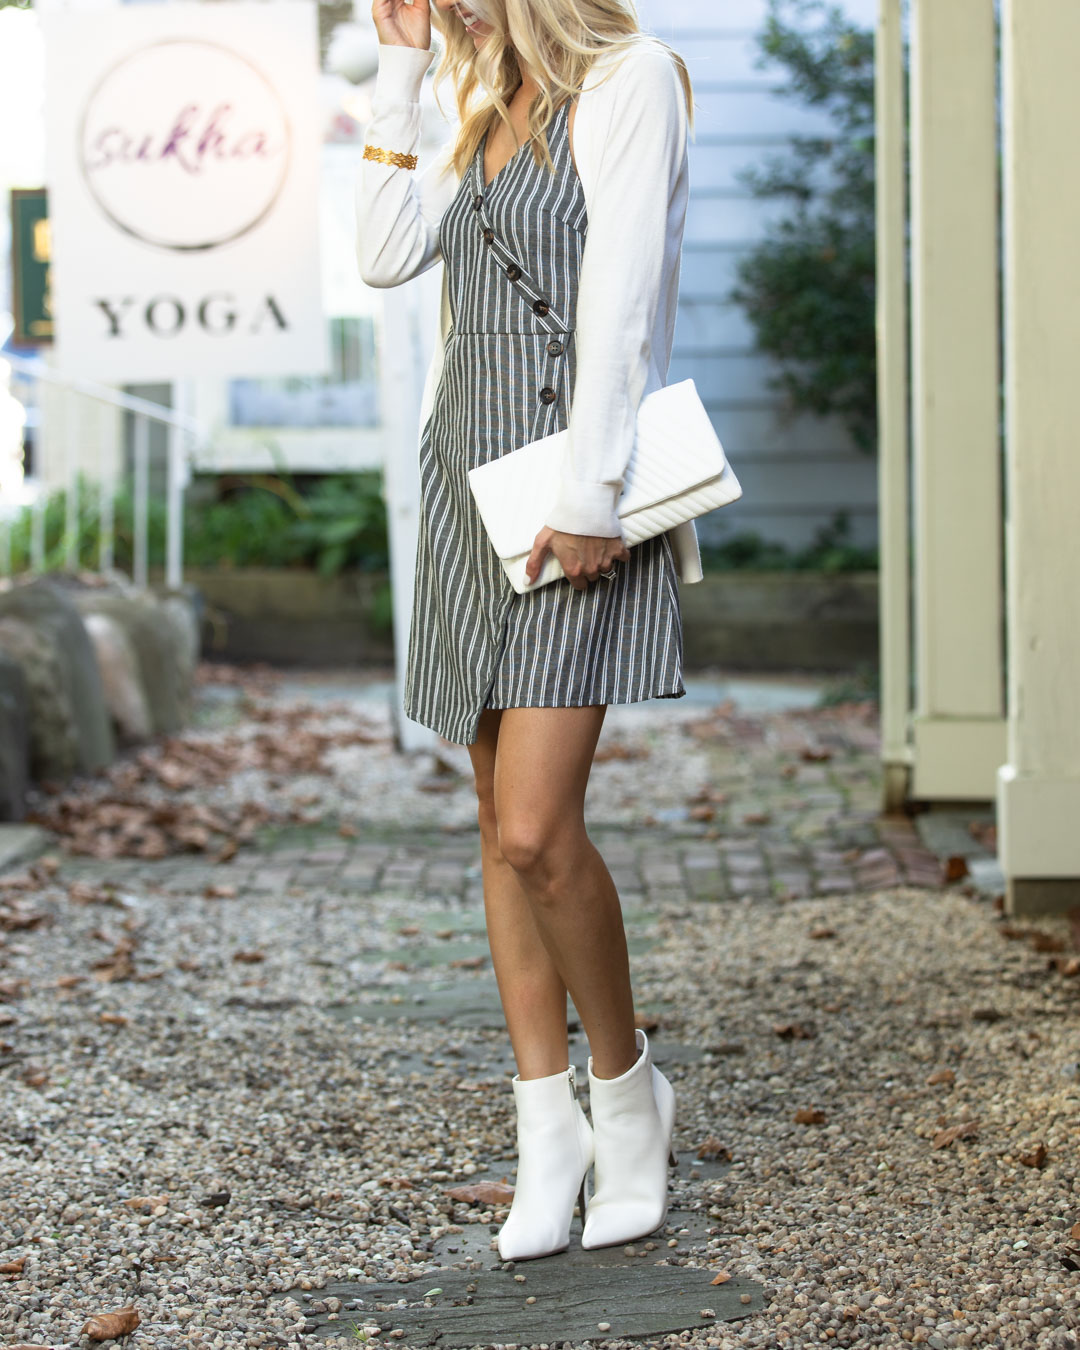 Shein Striped Wrap Dress and White Booties